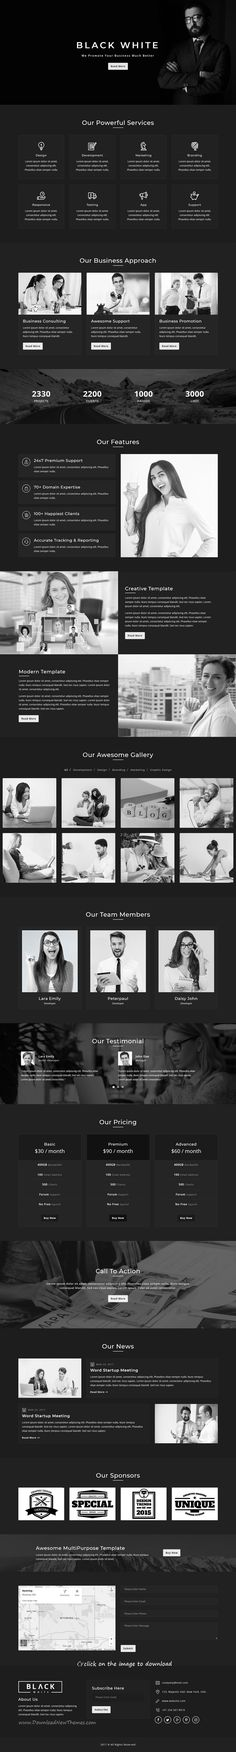 Black - White is clean and modern design responsive #HTML template for multipurpose #landingpage website with 6 unique homepage layouts to download click on image.